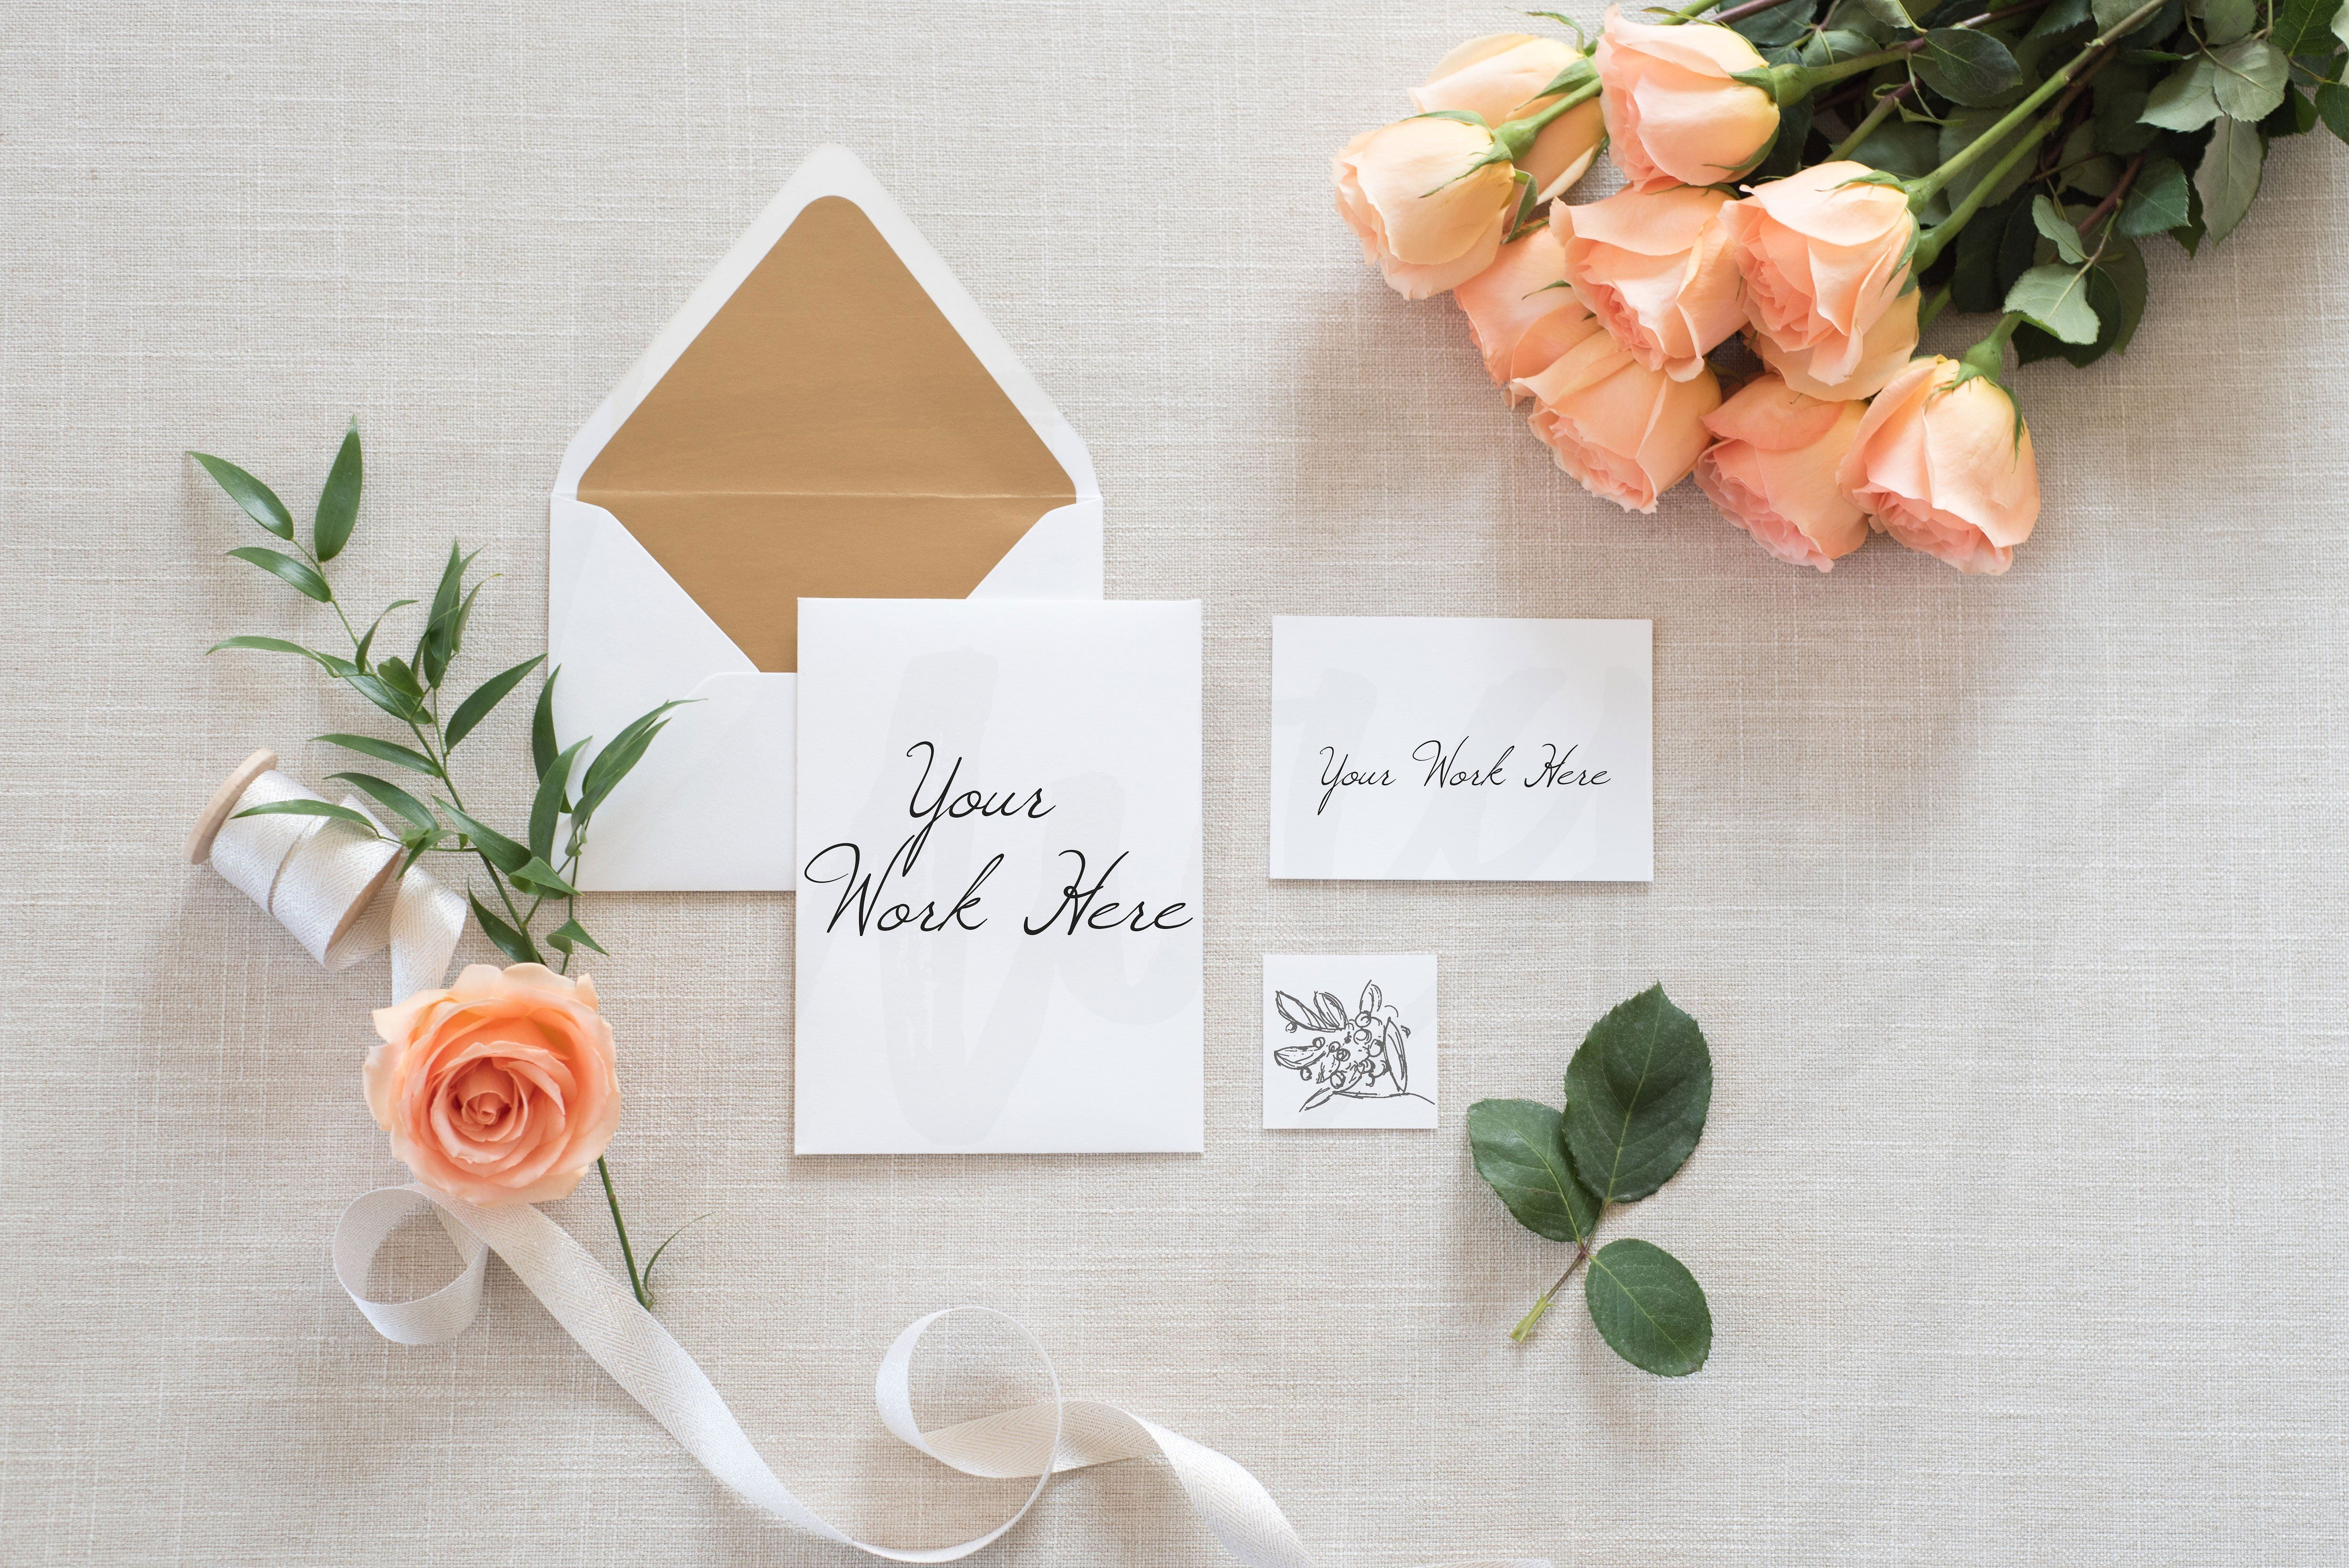 design printable invitation cards online free%0A Y O U A R E I N V I T E D Showcase your beautiful wedding invitations and  designs on these gorgeous mockups  With handy placeholders and plenty of  negative